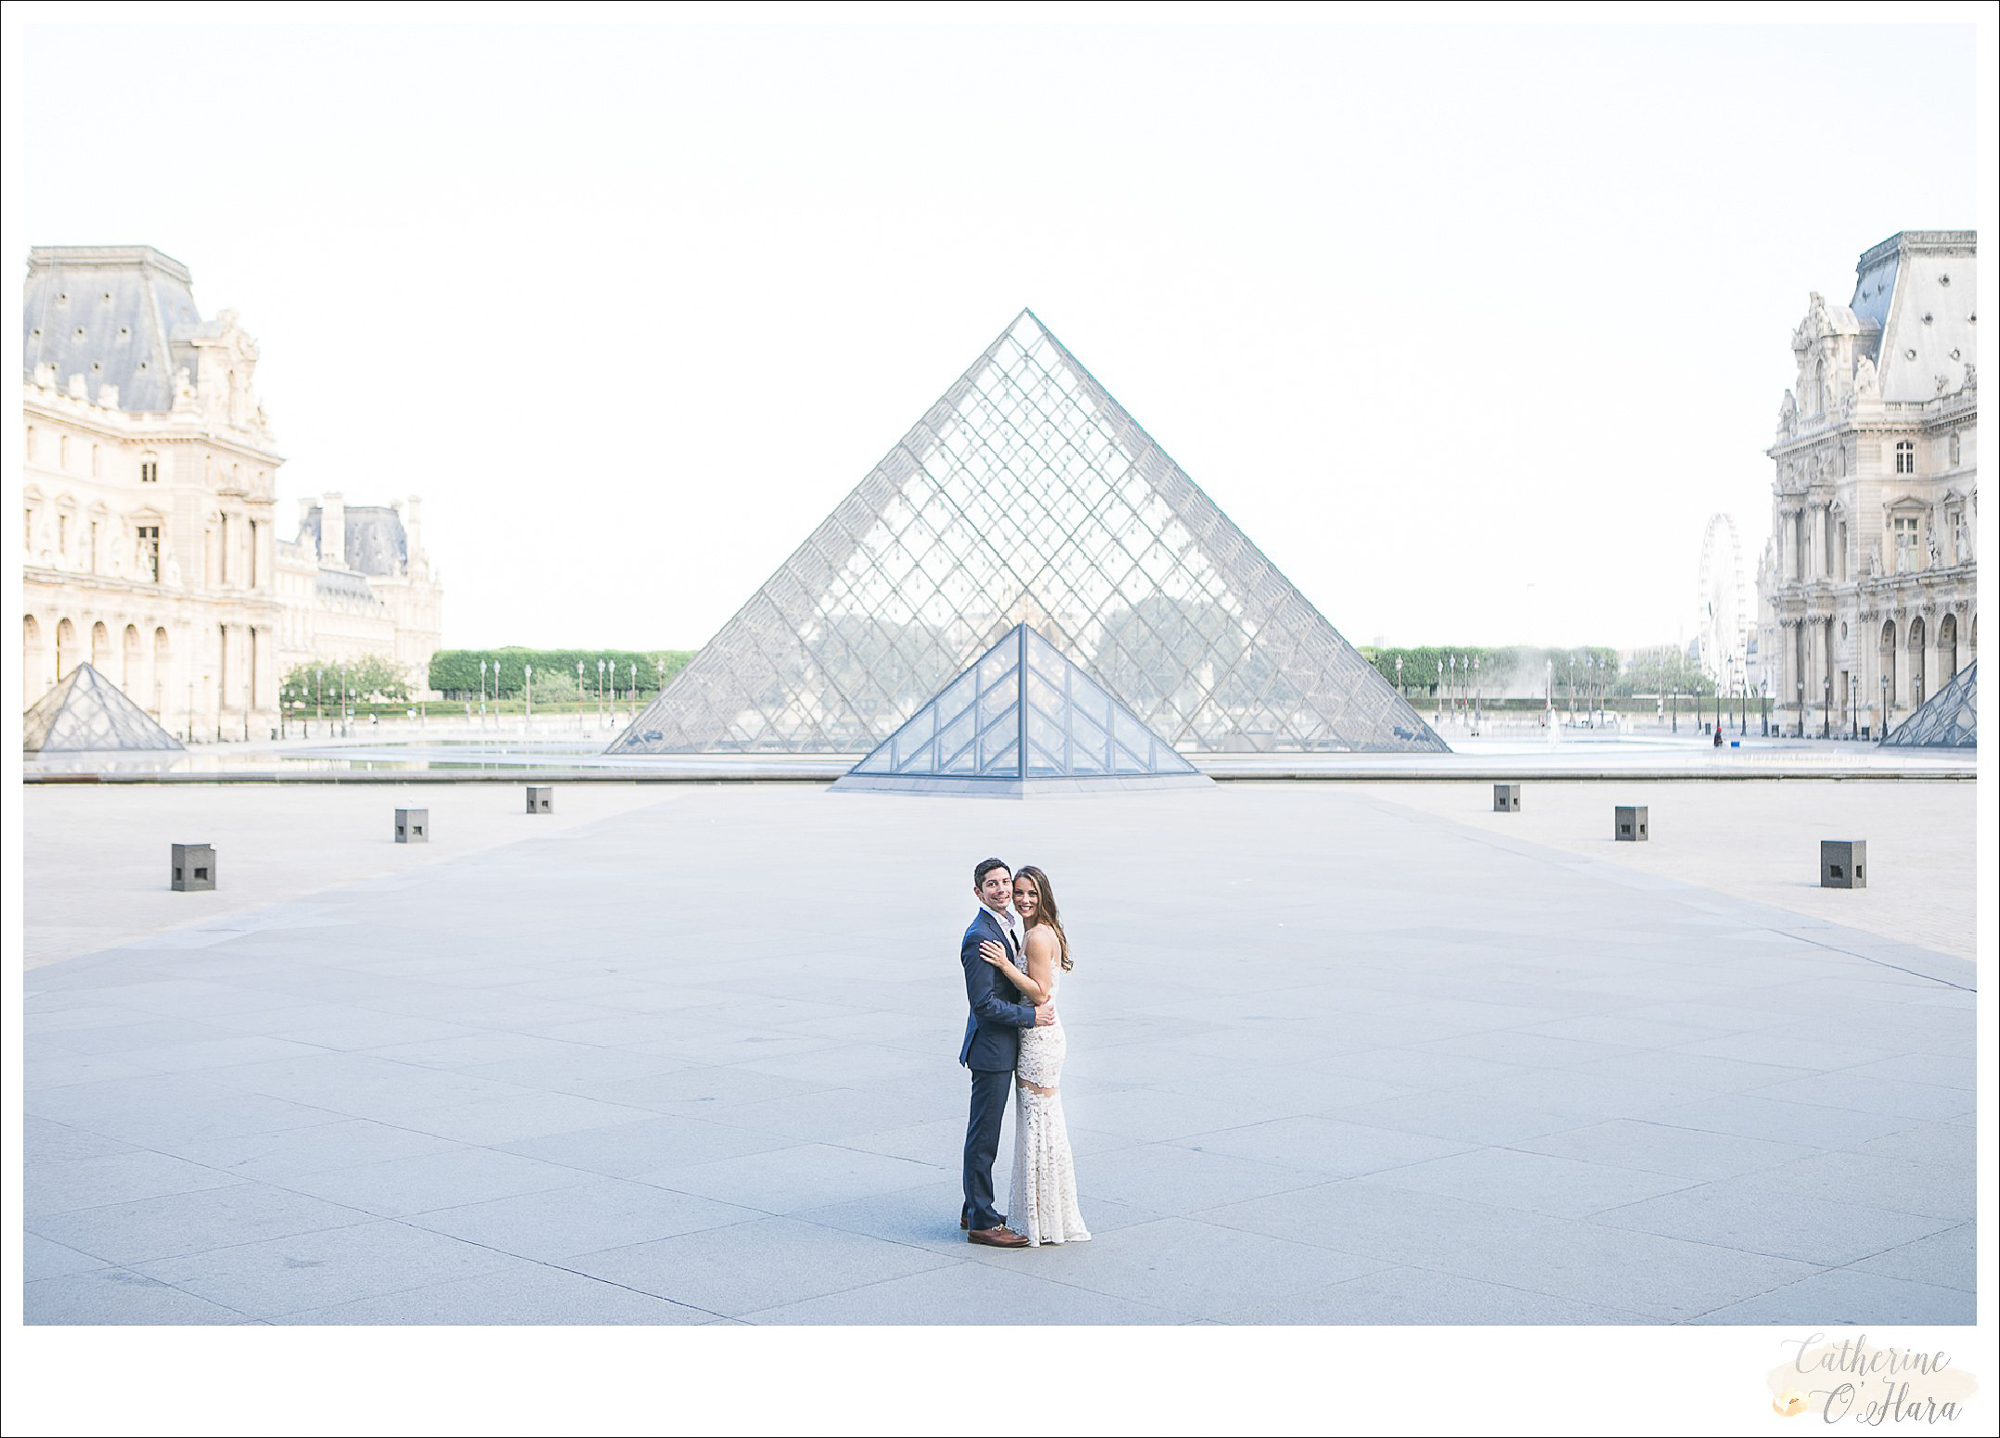 surprise proposal engagement photographer paris france-37.jpg